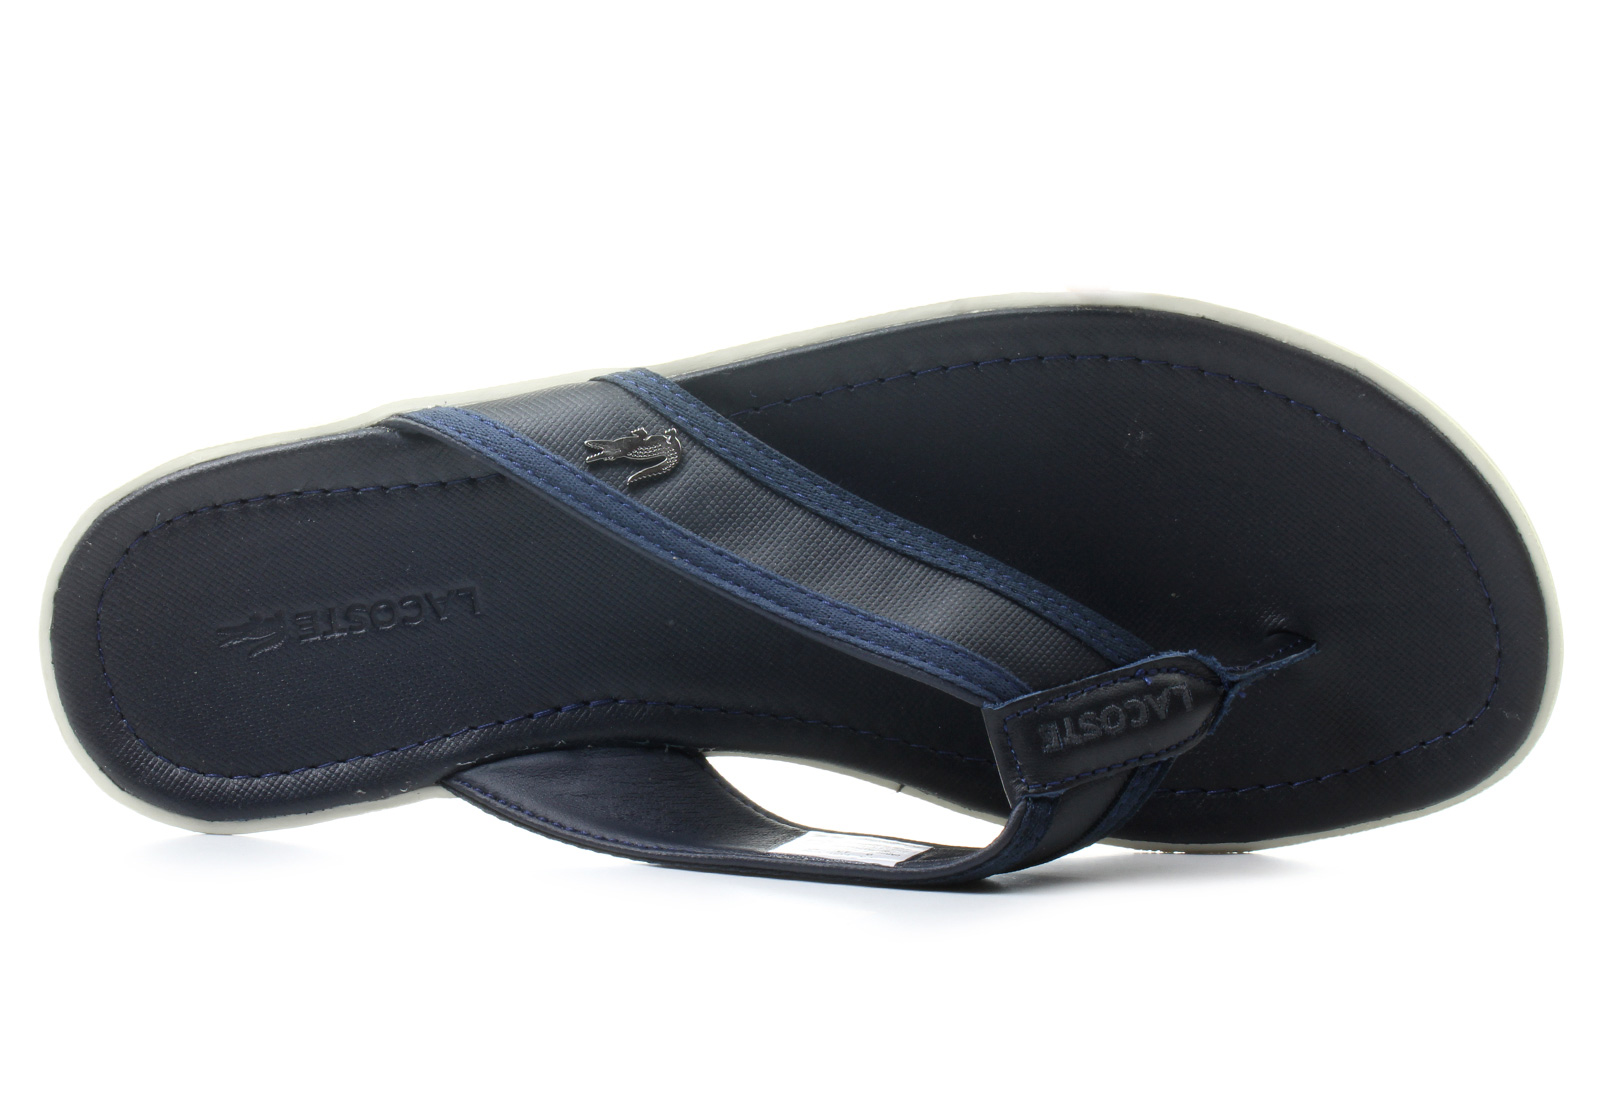 d8b40aec1a1e99 Lacoste Slippers - Carros - 151srm2115-120 - Online shop for ...